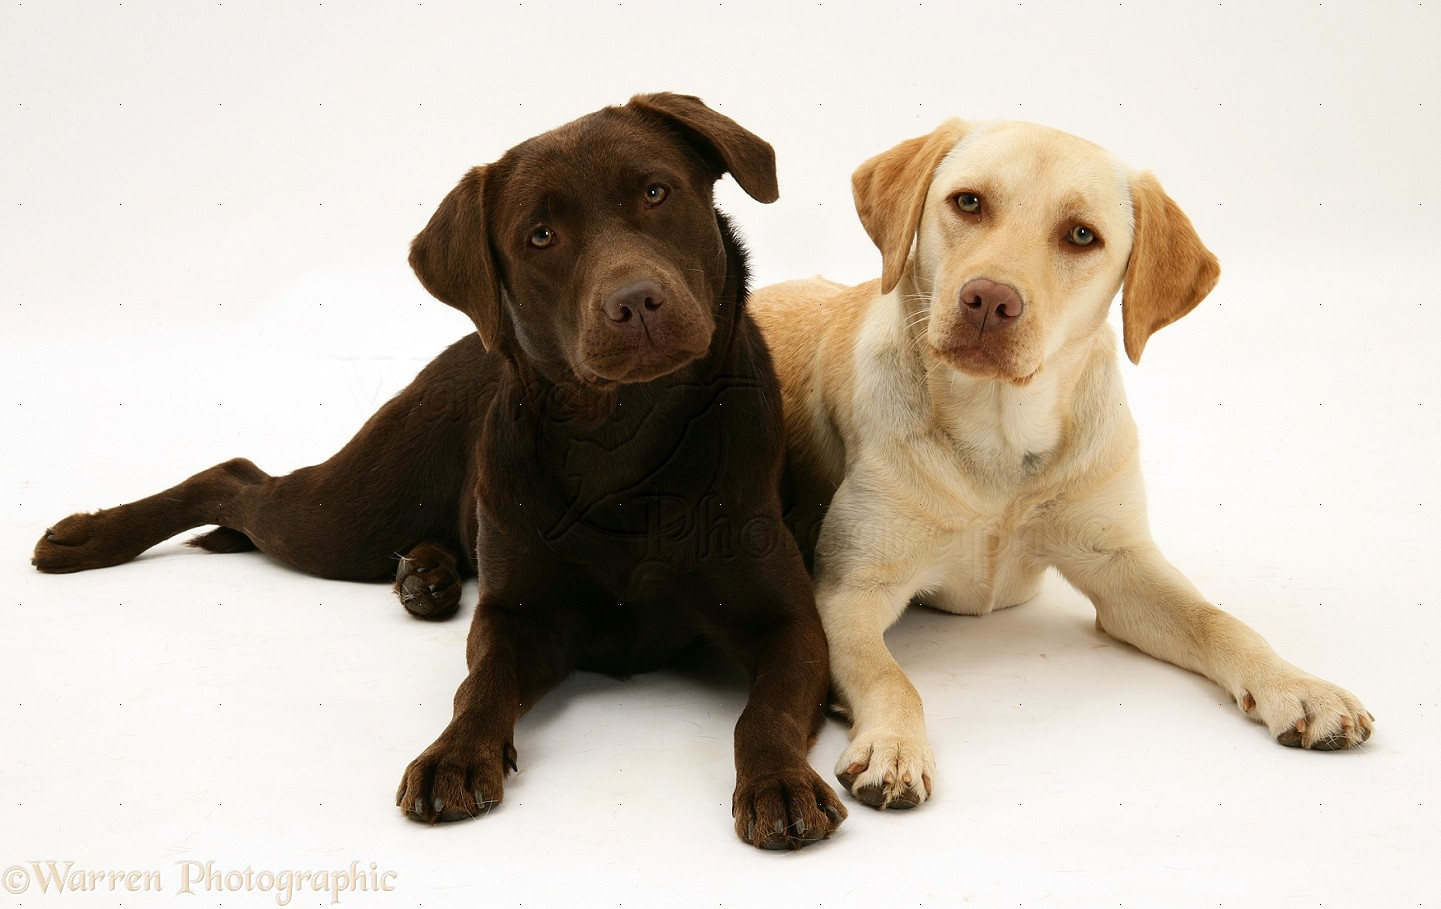 At The Yellow Labrador Retriever ImgWhite And Yellow Labrador Retriever